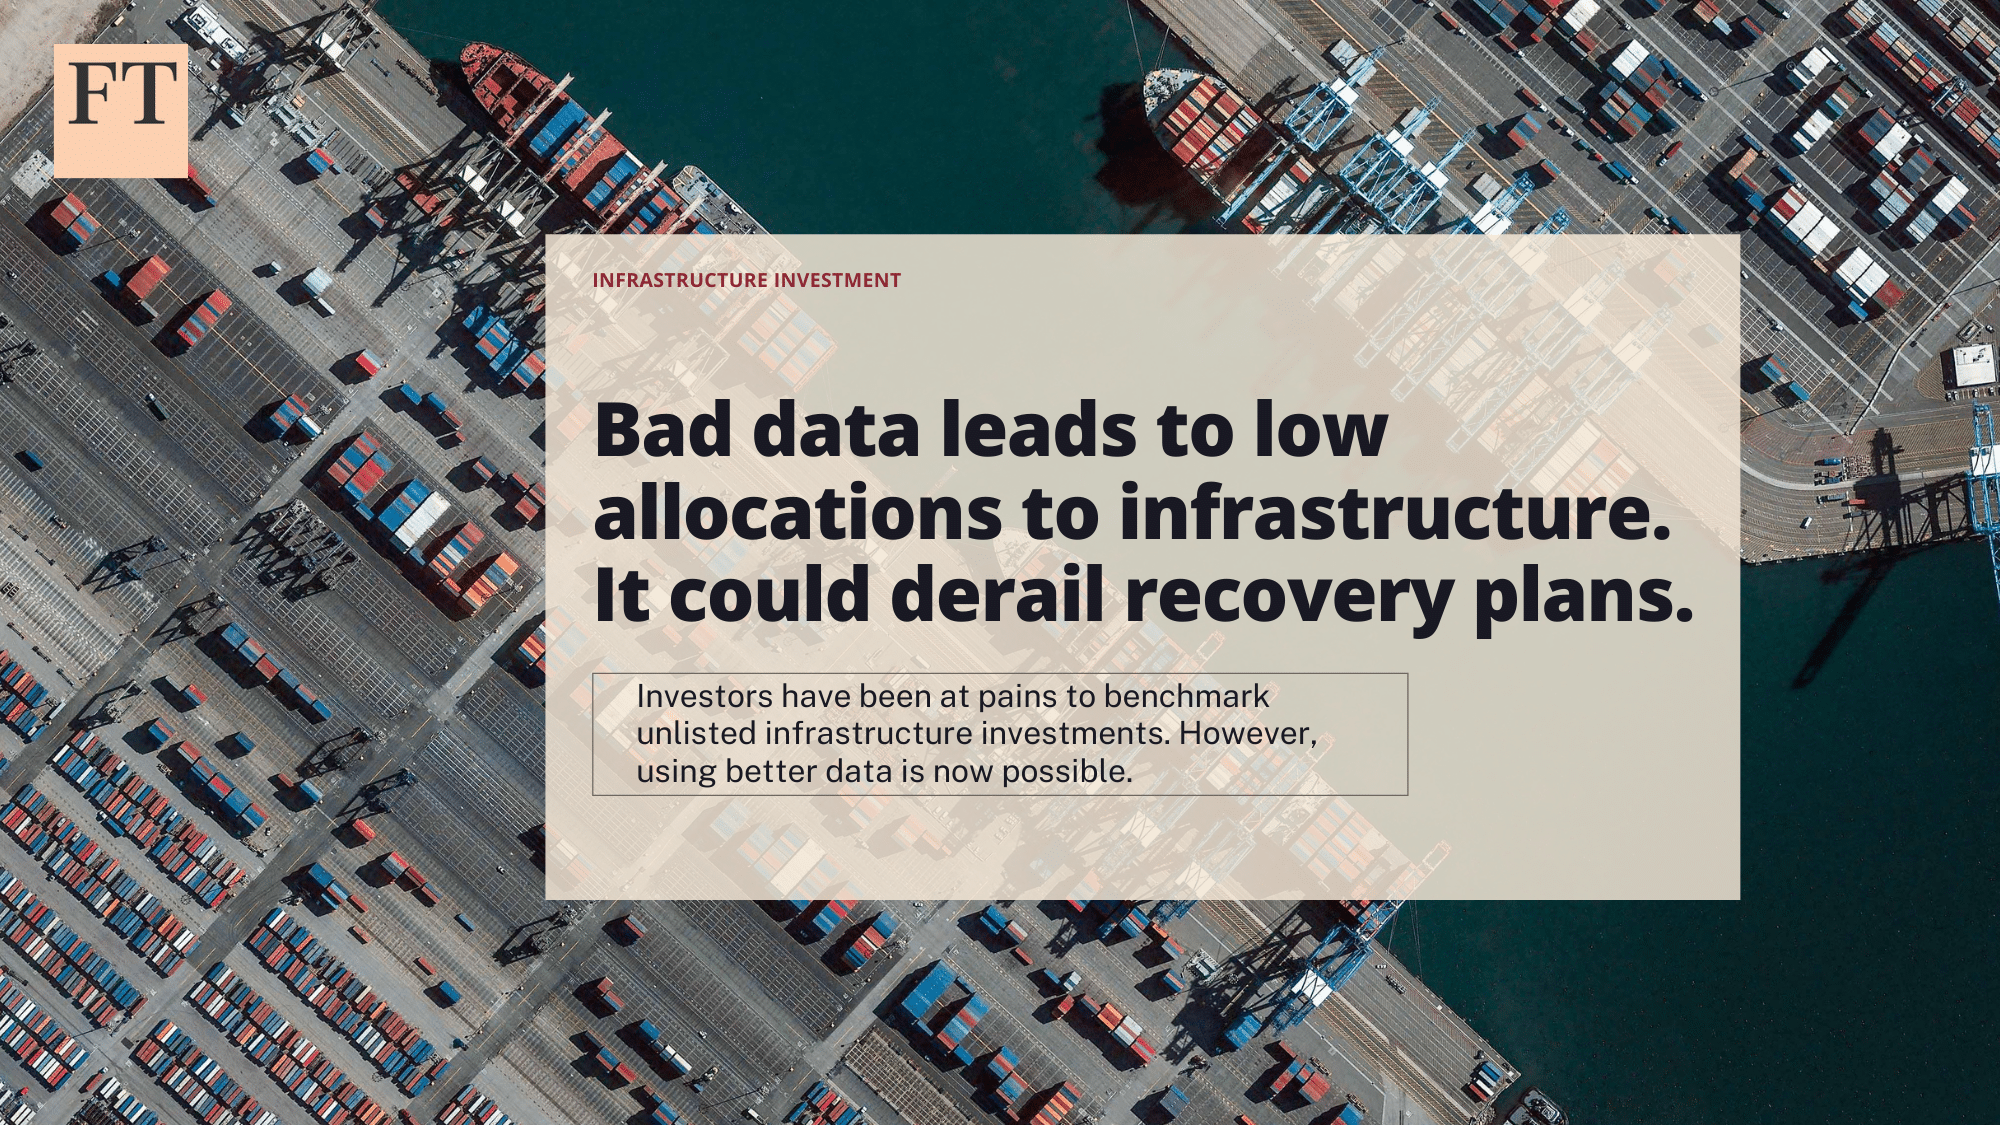 FT: Bad data means lower allocations to infrastructure